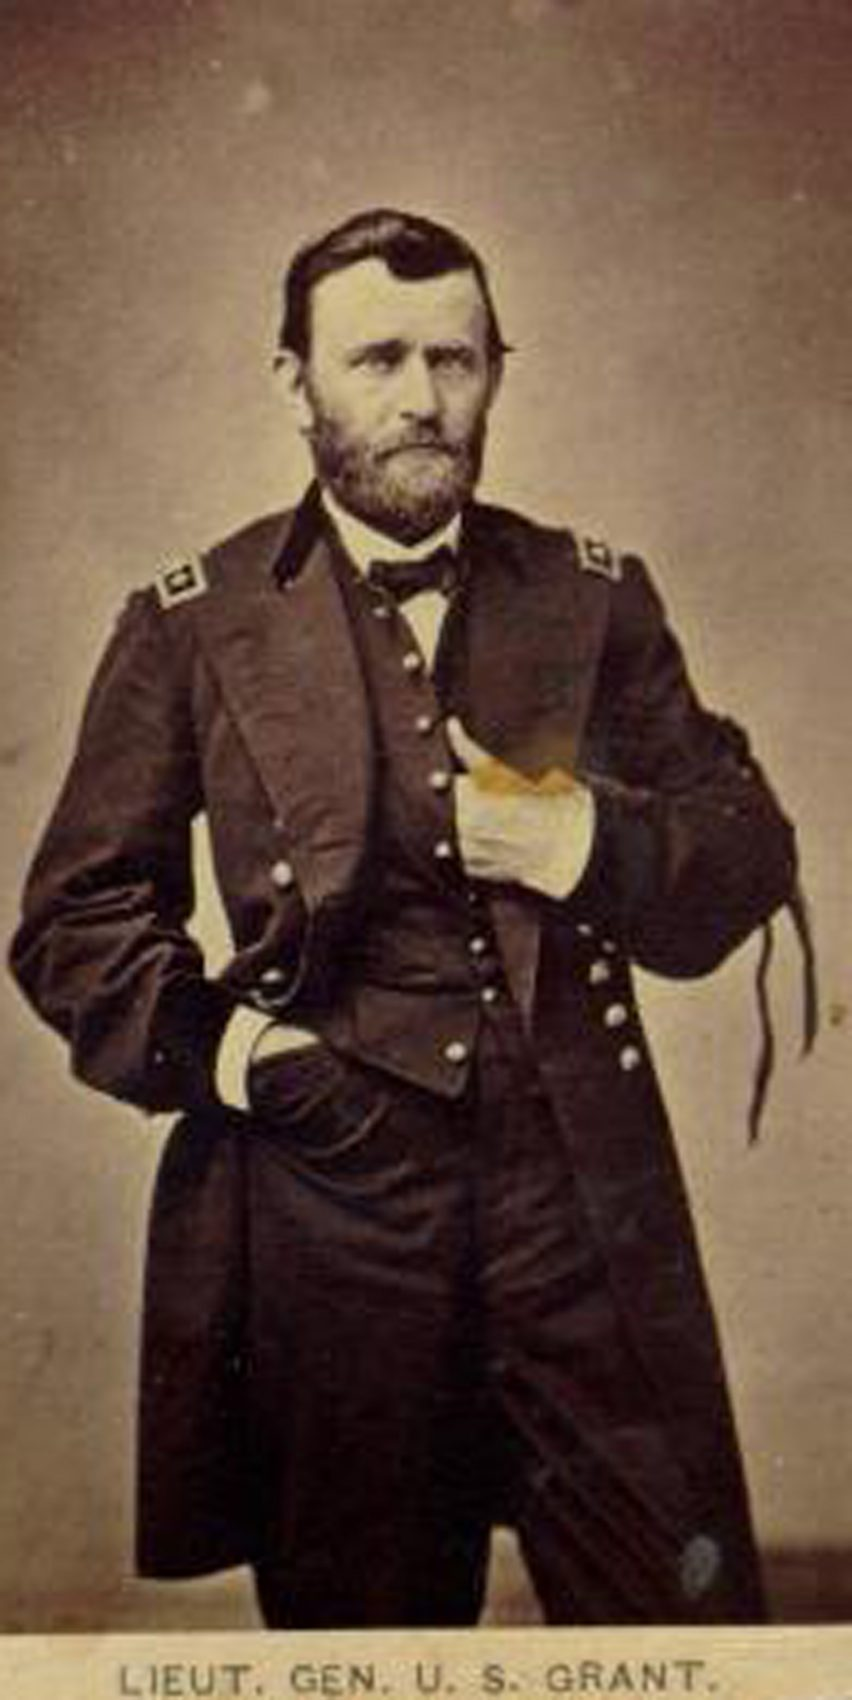 a biography and life work of robert e lee an american civil war general A biography and life work of robert e lee, an american civil war general  this: american civil war, robert e lee, biography of  e lee, biography of robert e lee.